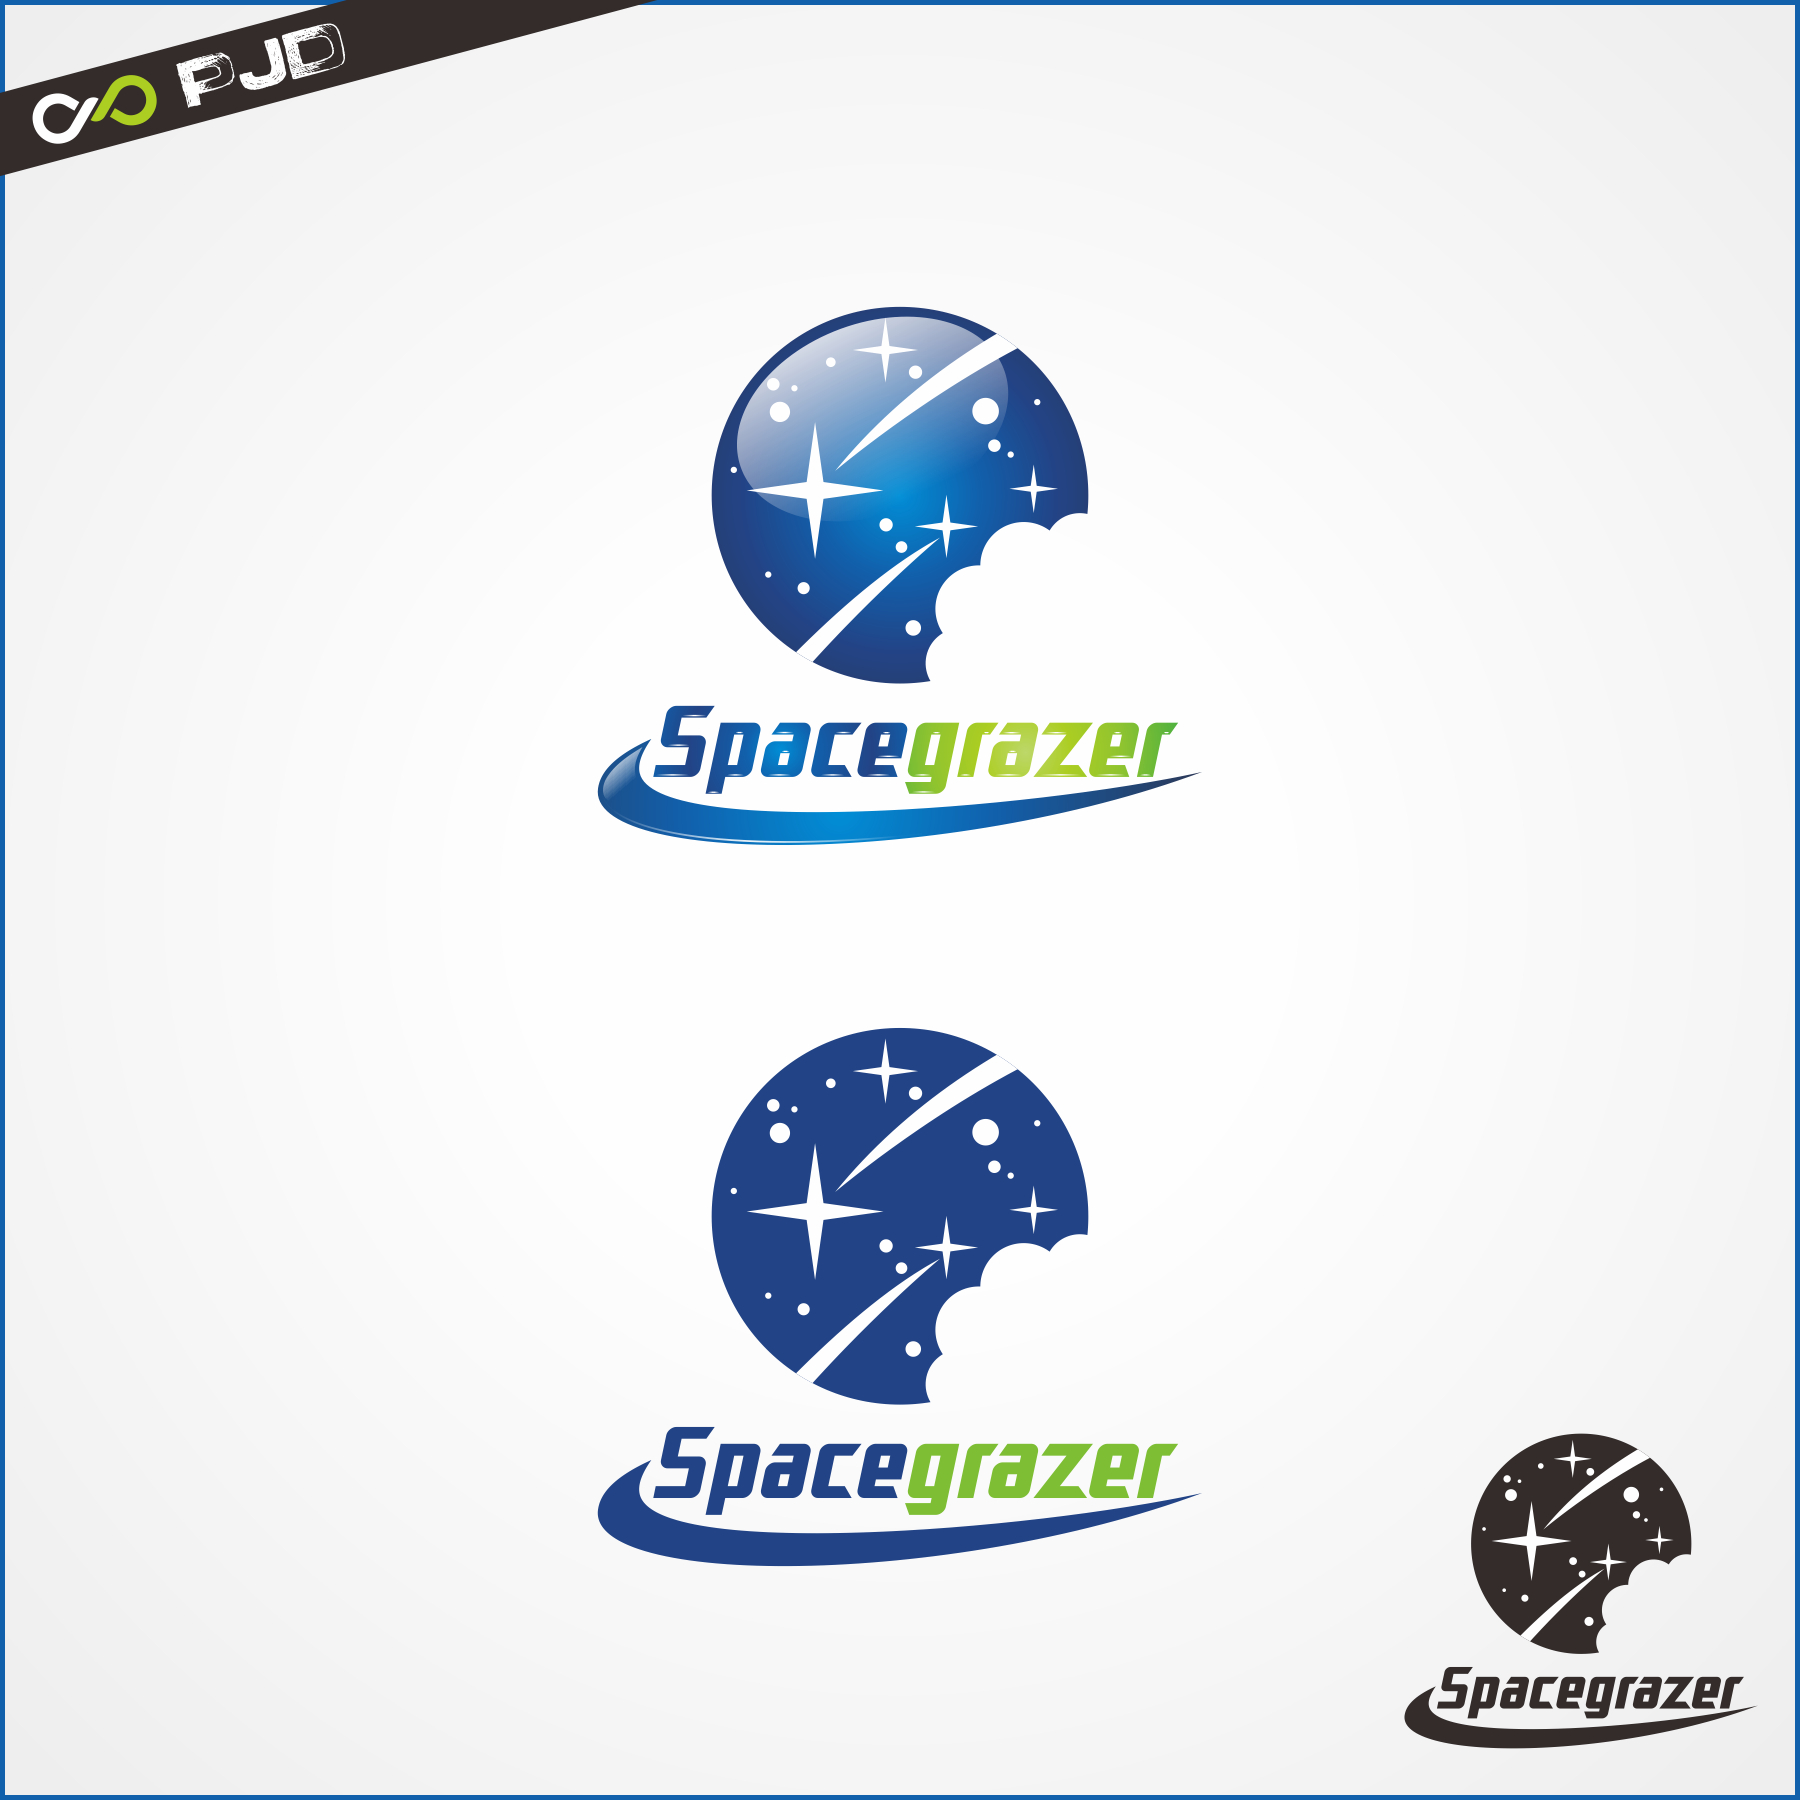 Logo Design by PJD - Entry No. 84 in the Logo Design Contest Fun Logo Design for Spacegrazer.